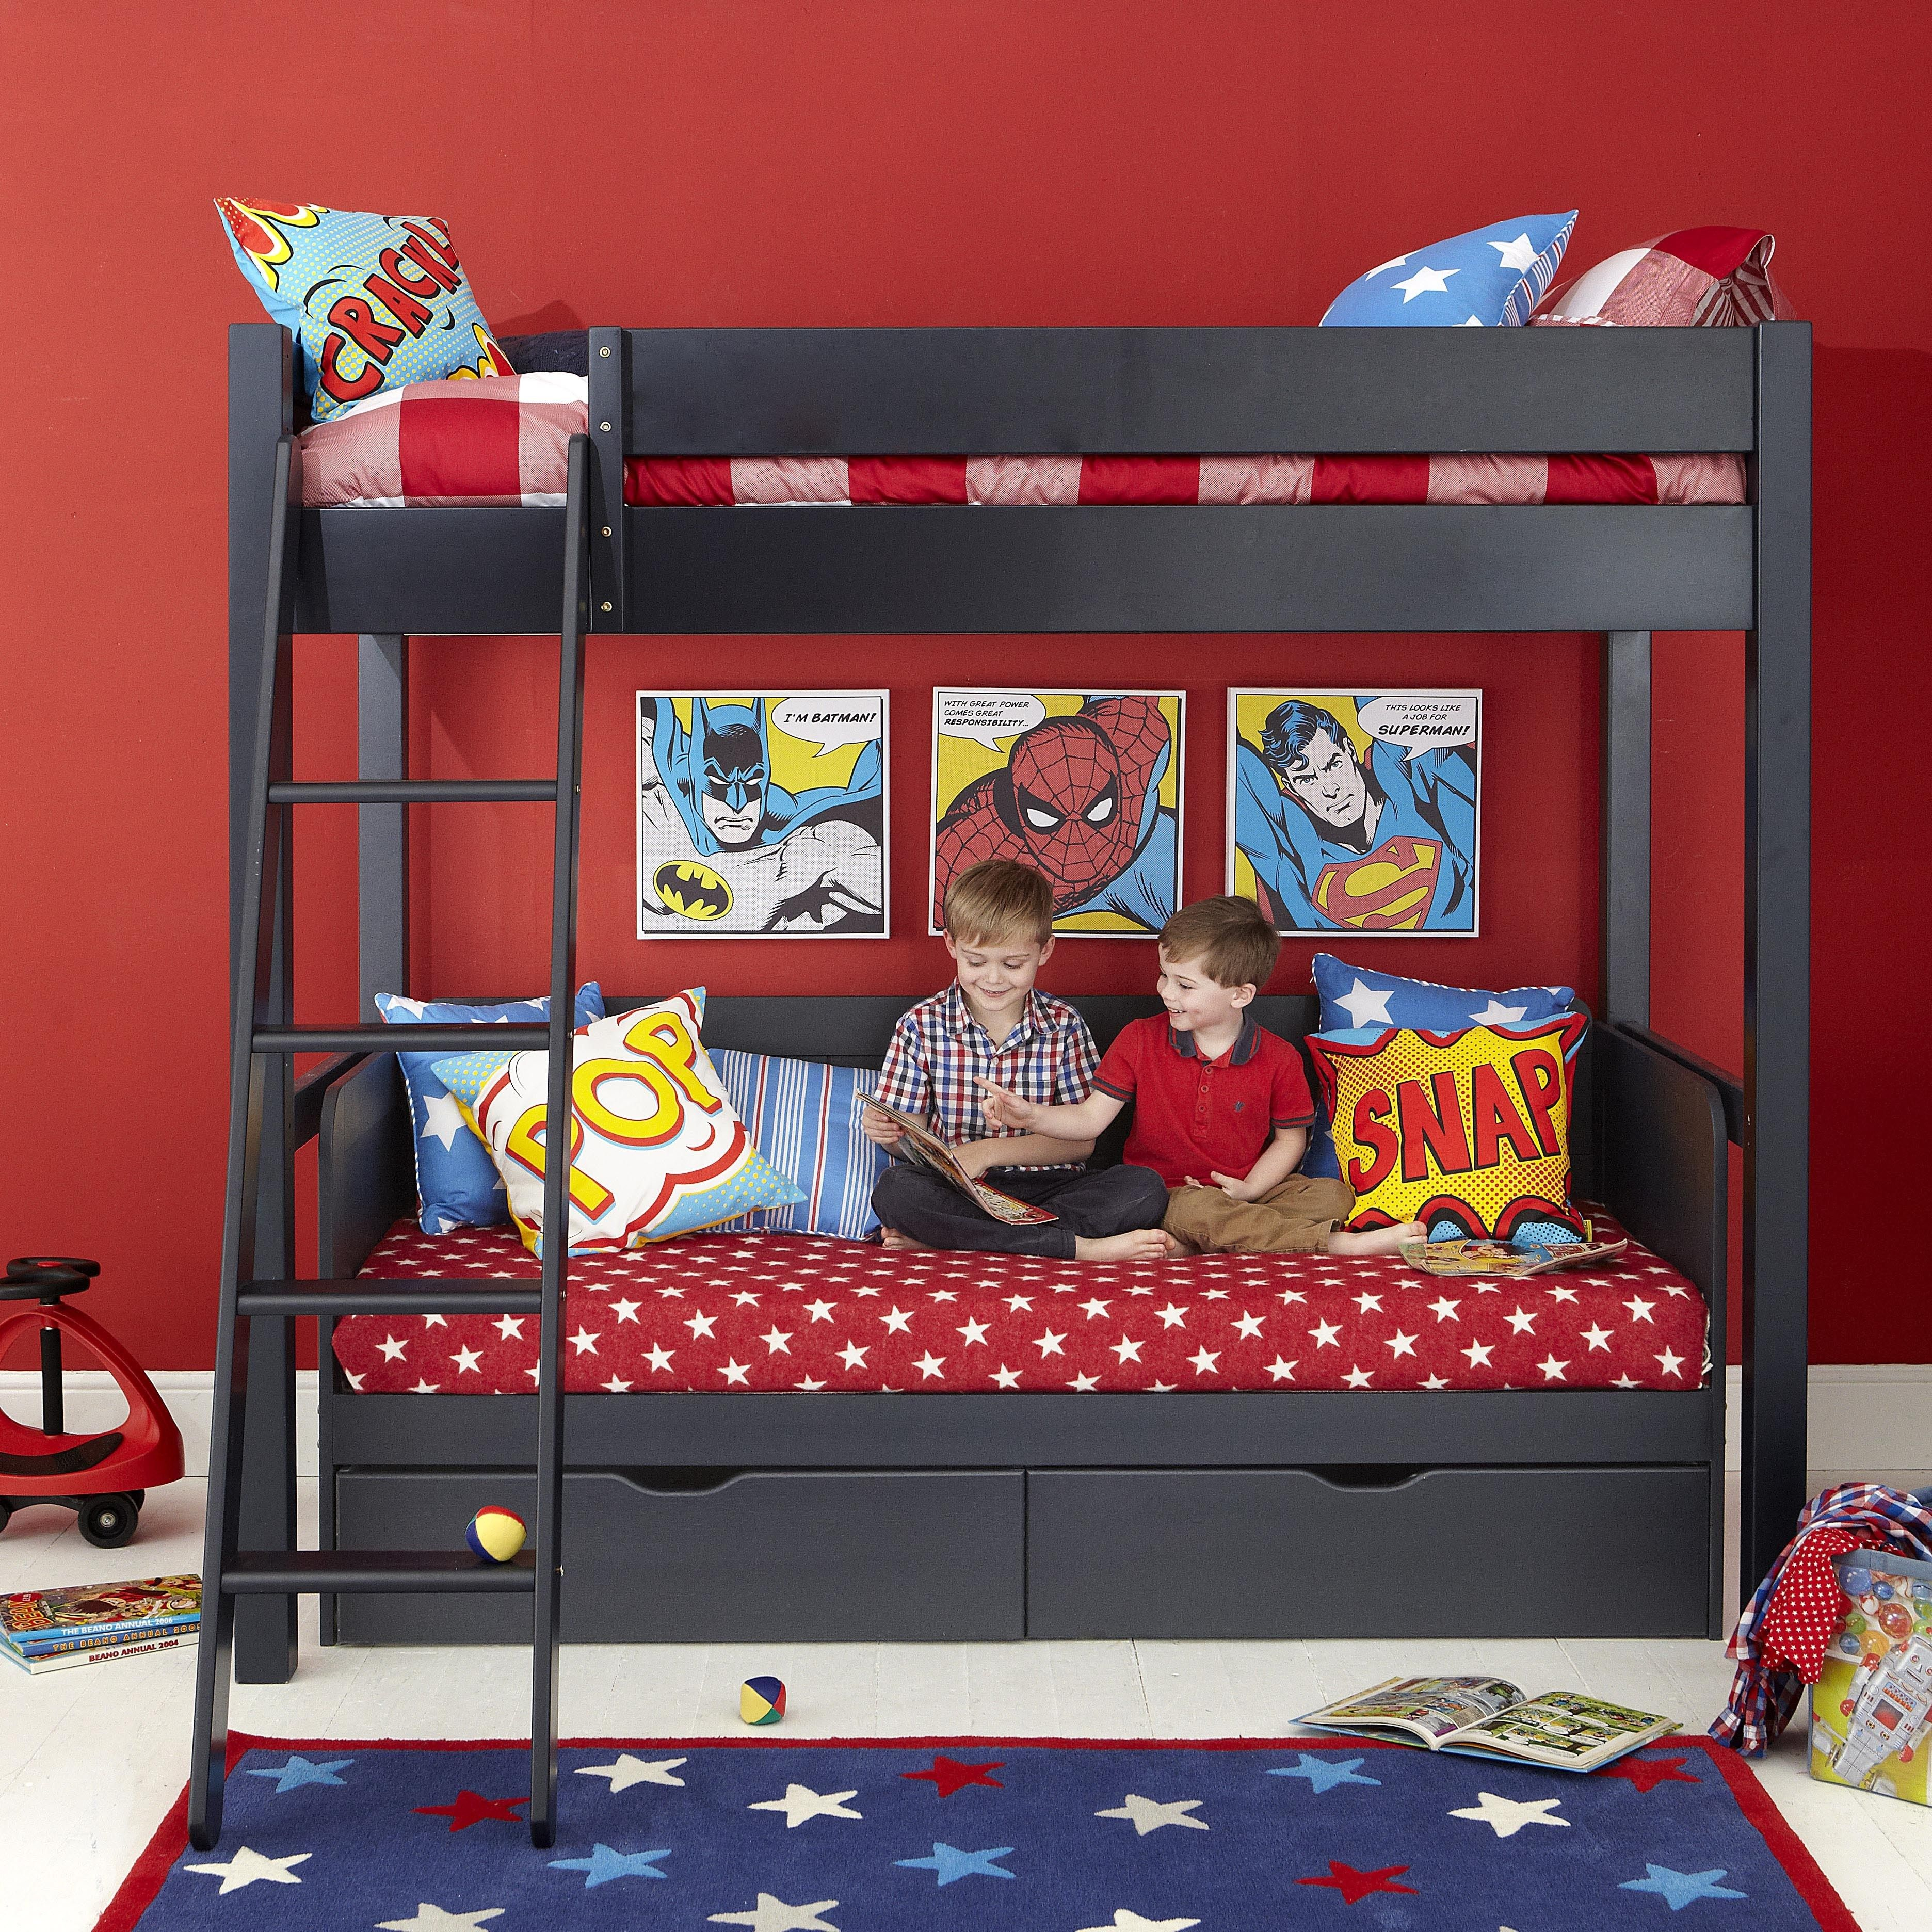 Star Bedroom Furniture Superhero Themed Black Wooden Aspace Bunk Bed With Star Pattern